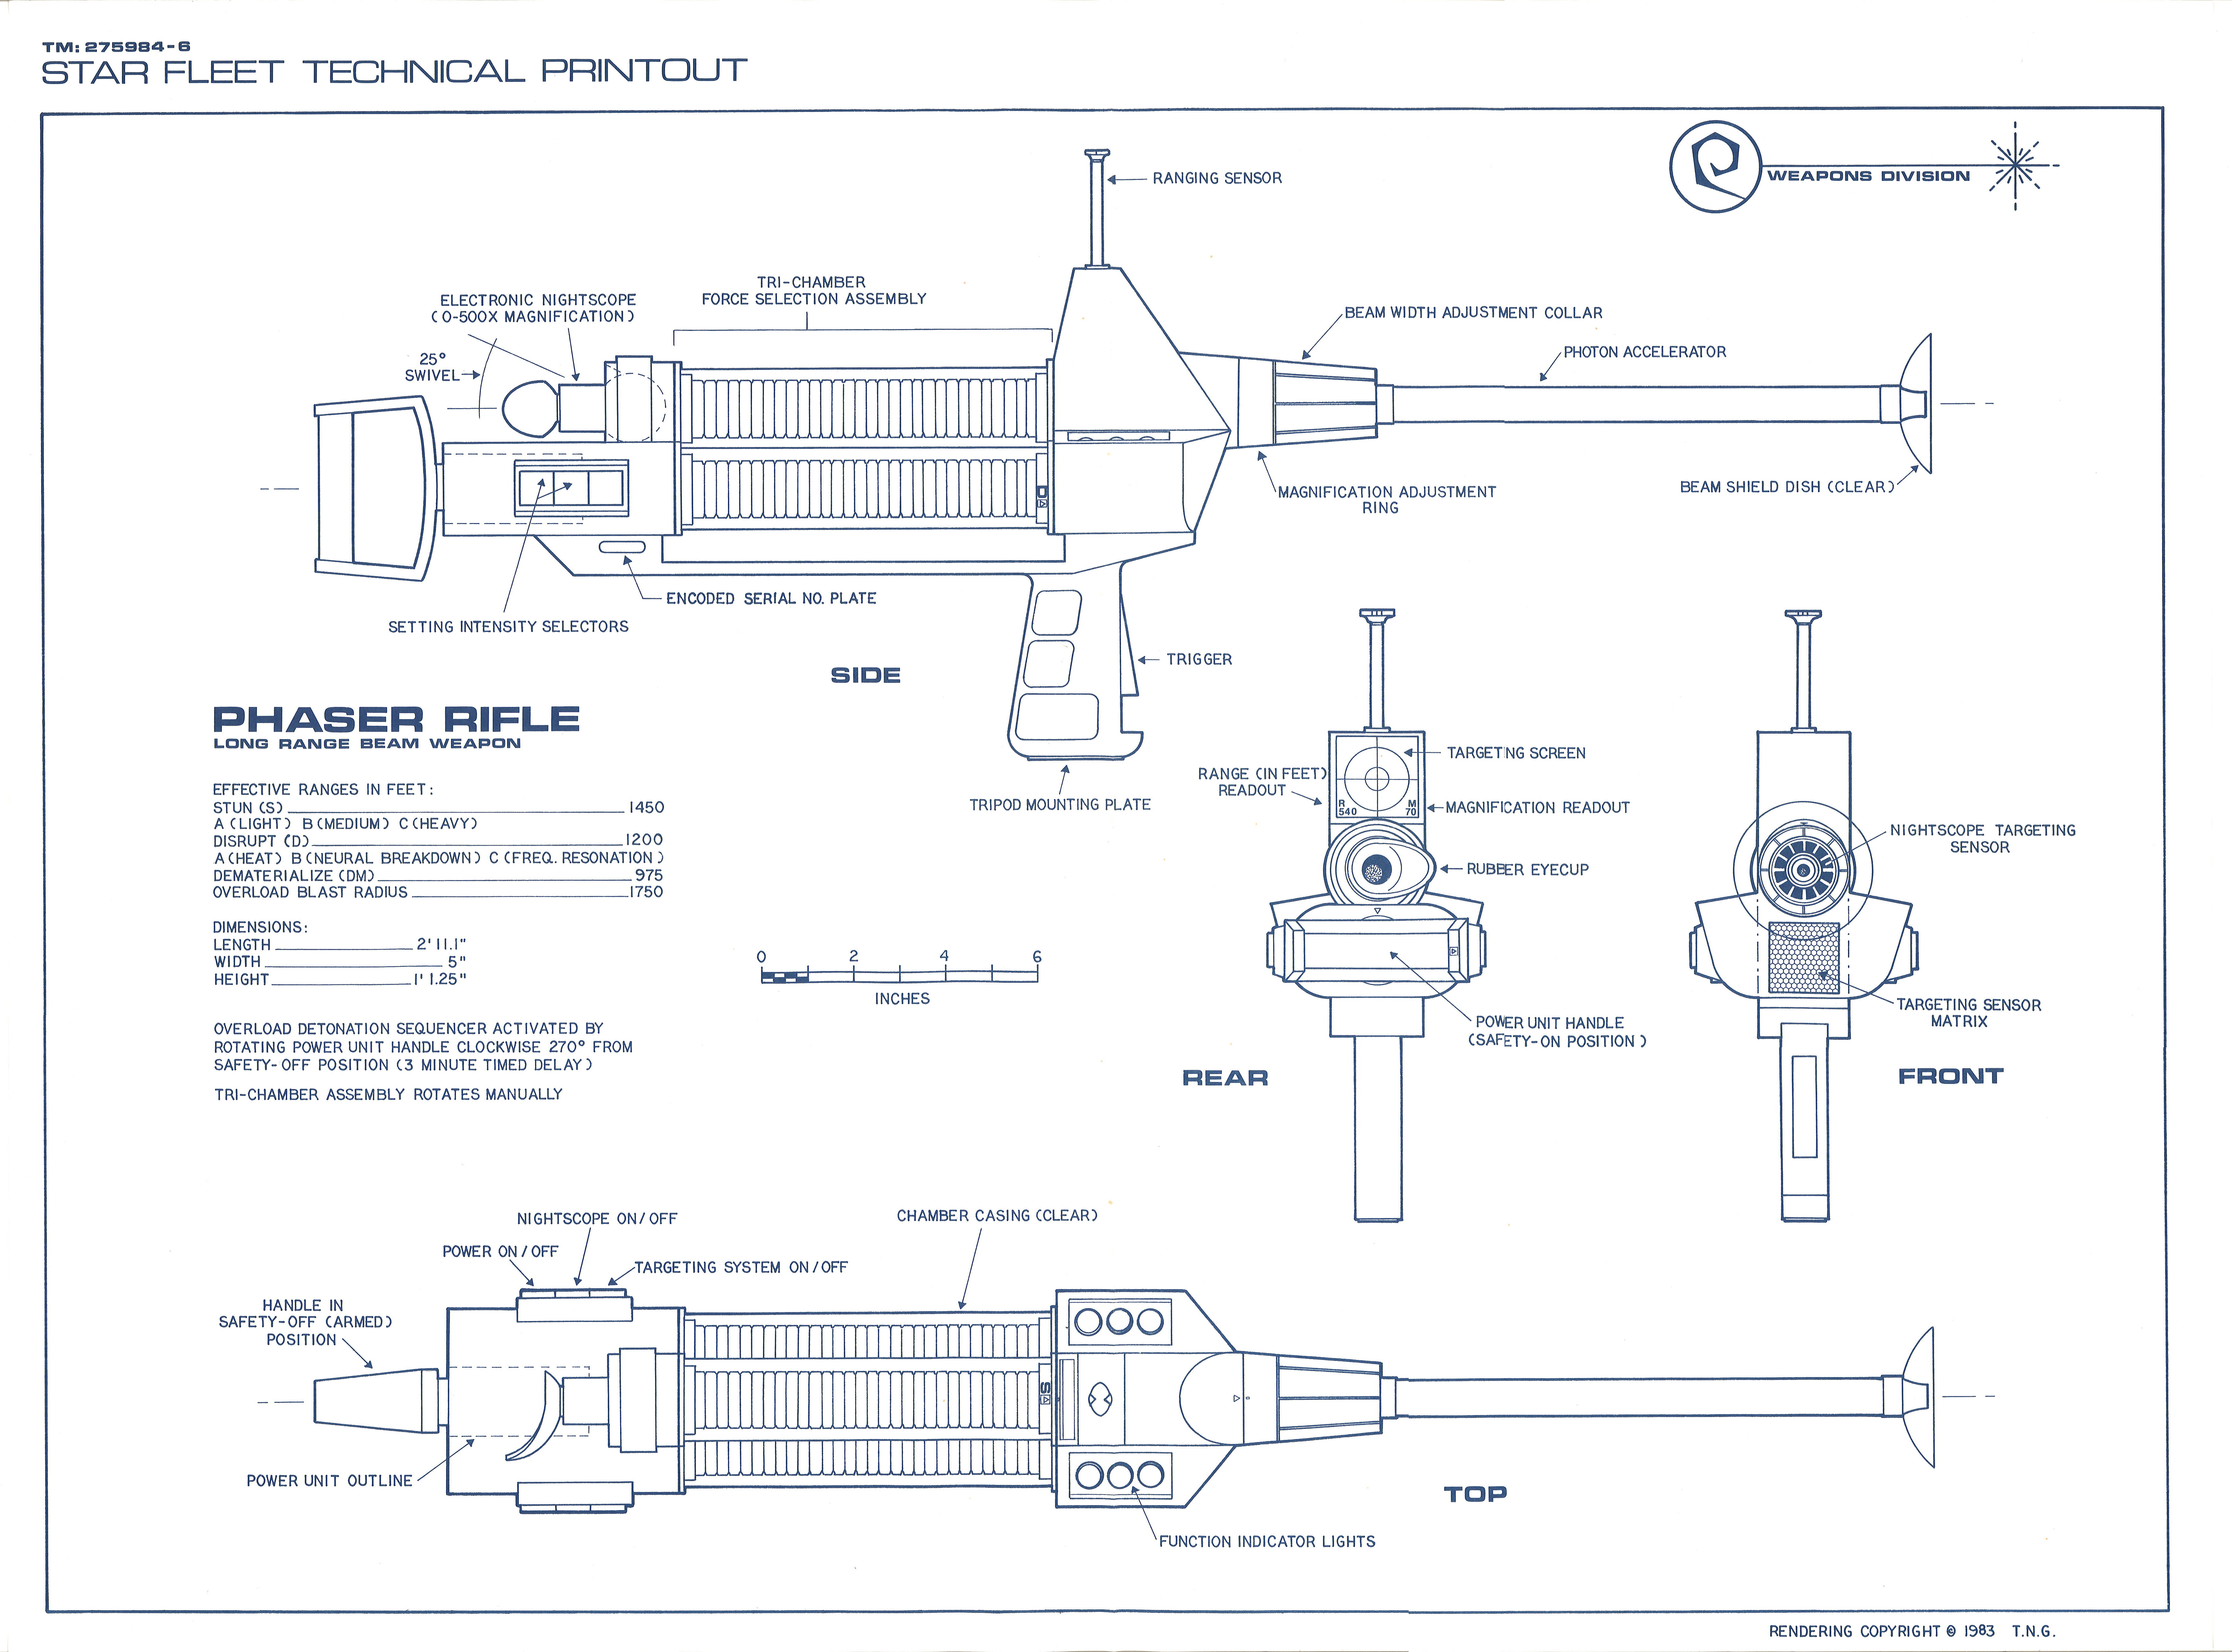 Star trek blueprints weapons and field equipment 1 weapons and field equipment 1 malvernweather Image collections